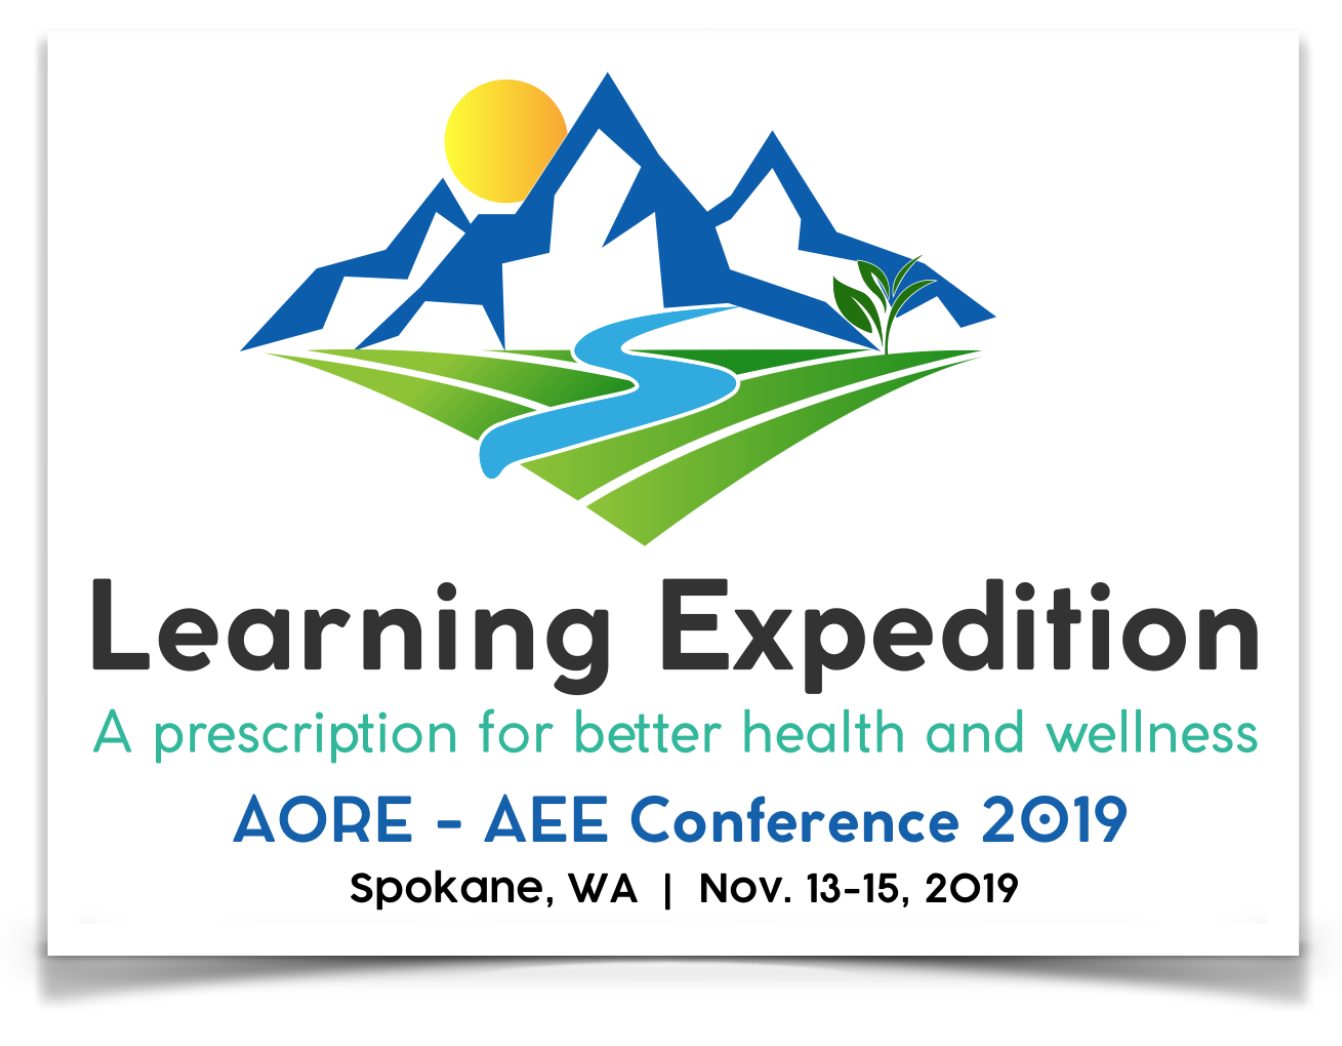 AORE AEE 2019 Conference